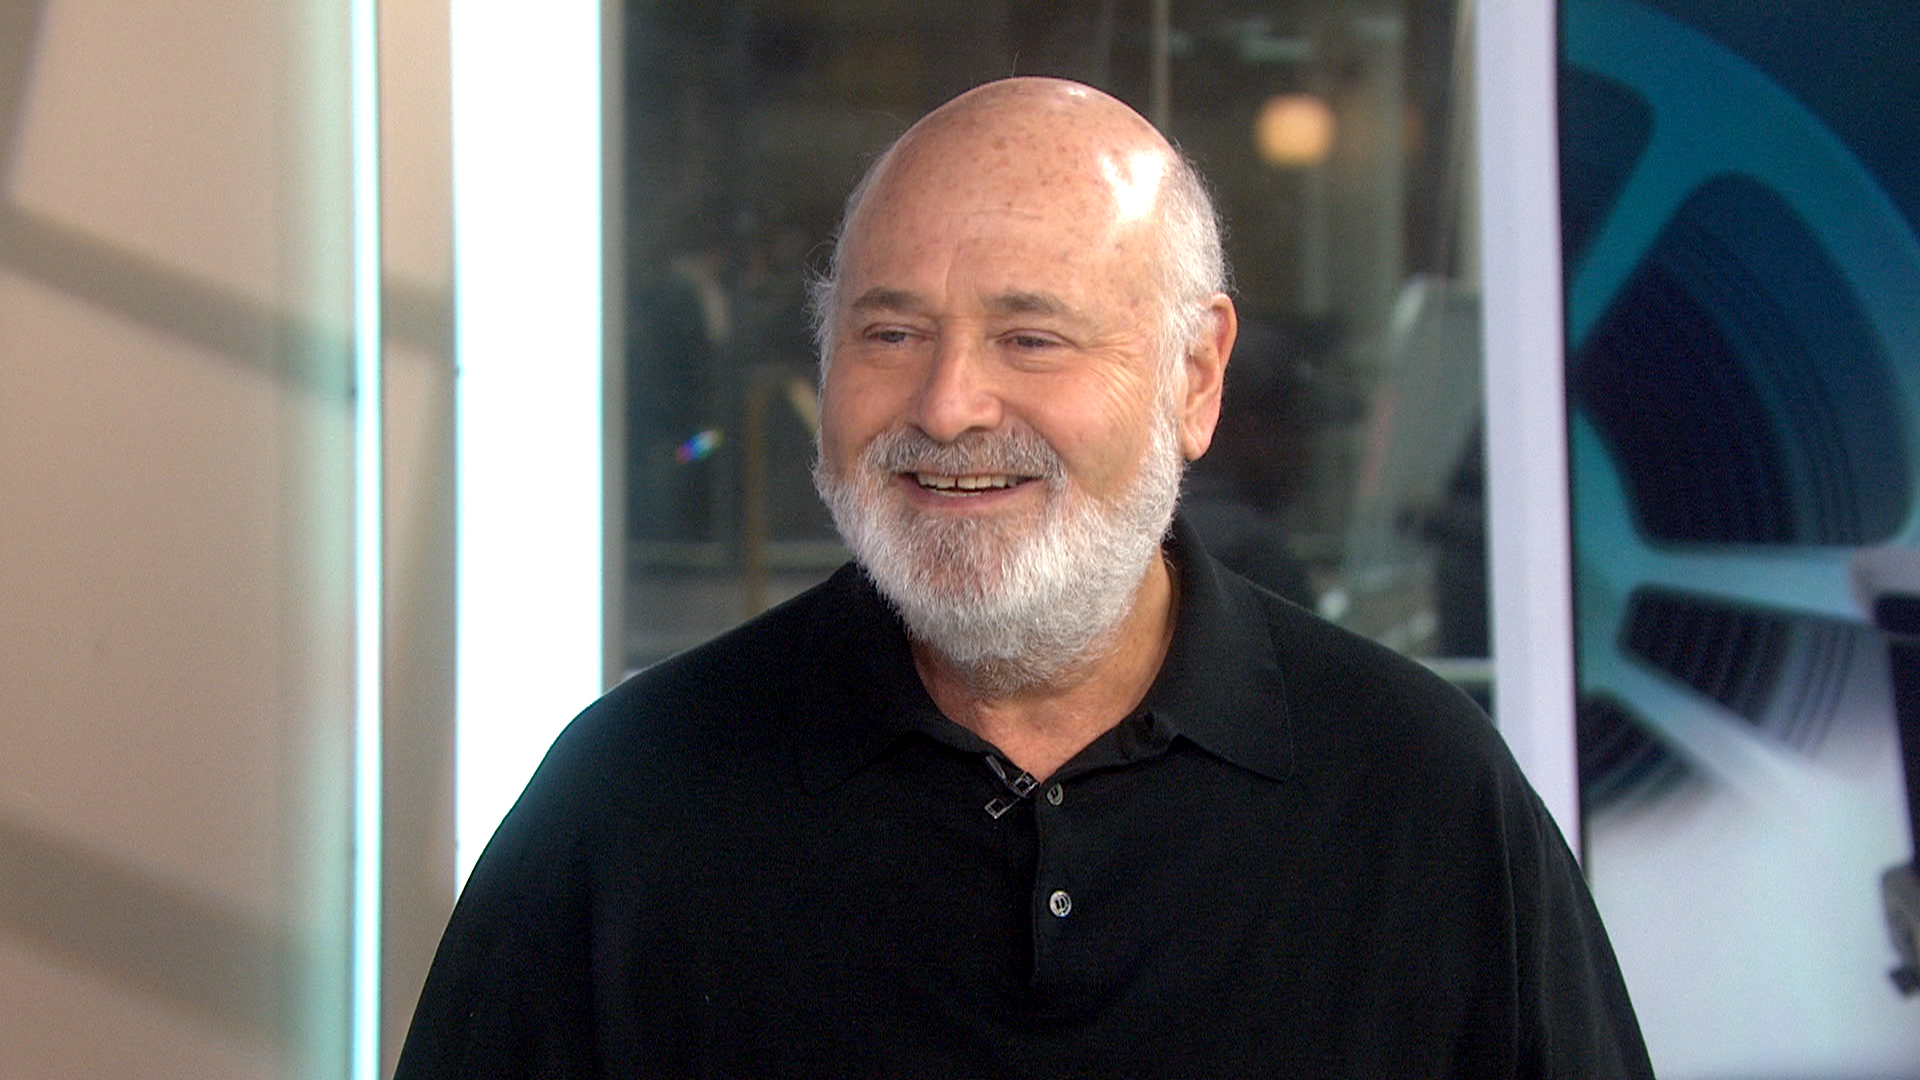 rob reiner discusses being charlie making a movie inspired by